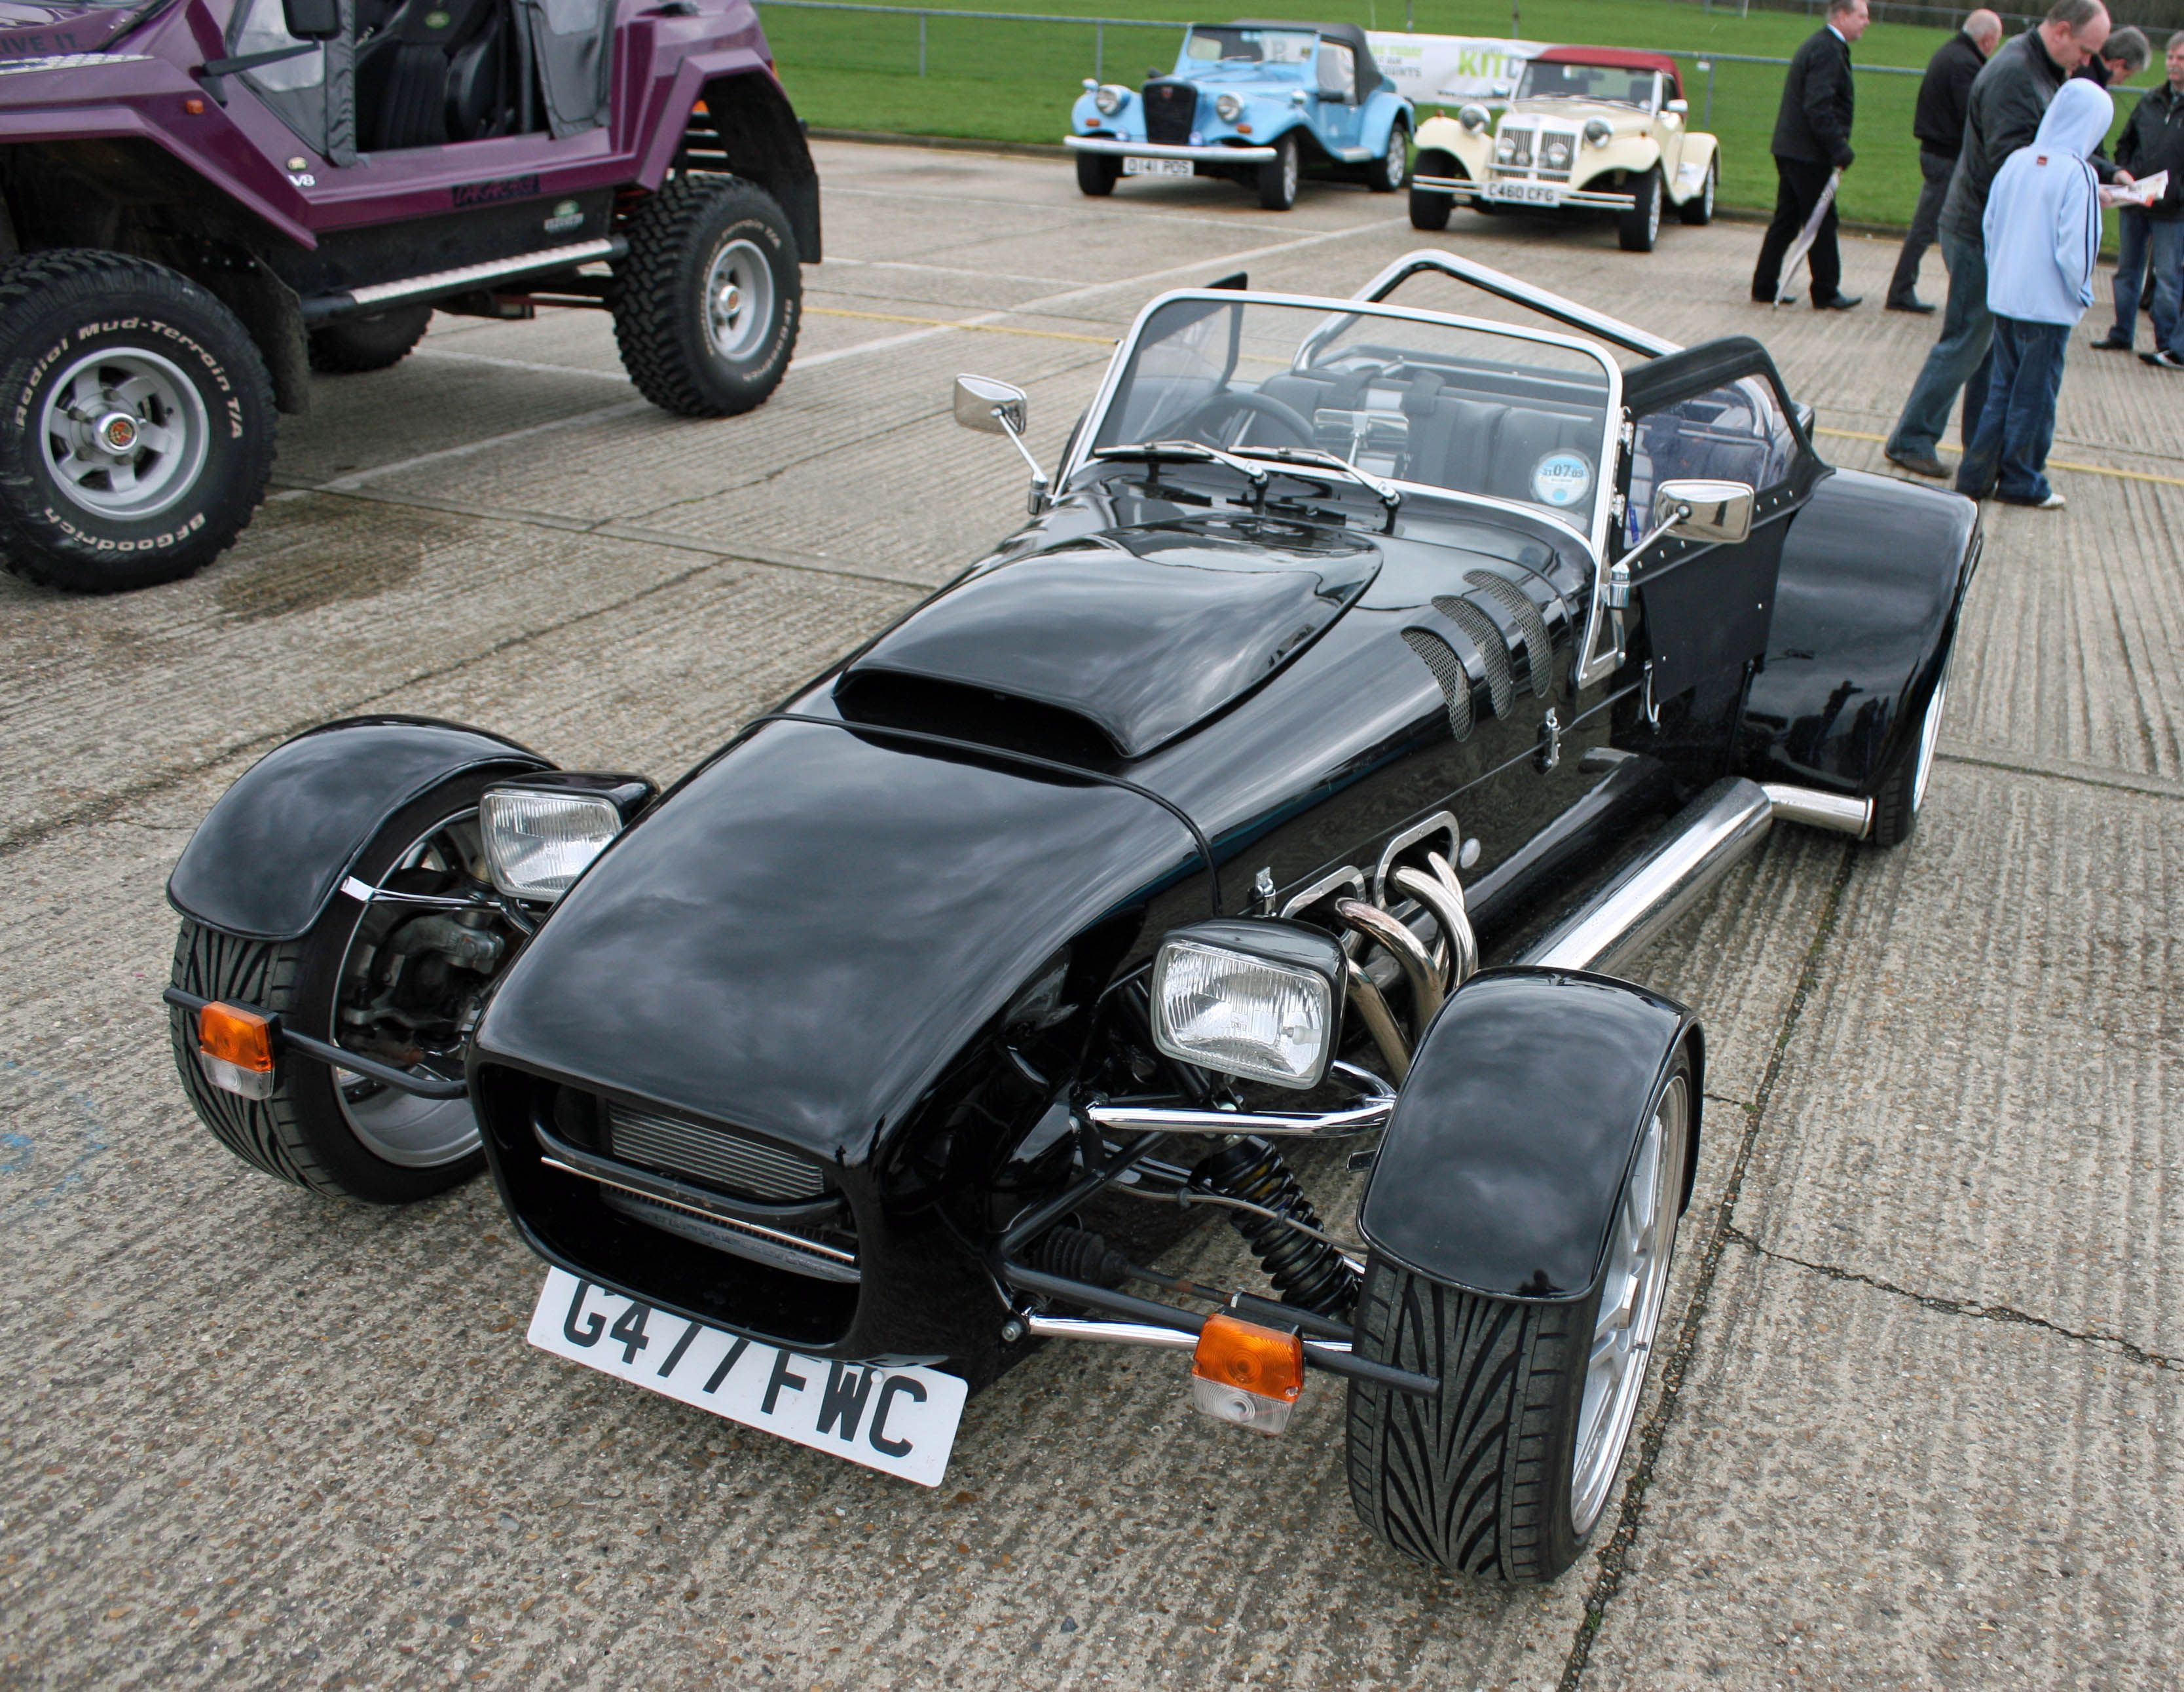 Caterham style, at the kit car show Kent UK   Cool Cars and Toy ...